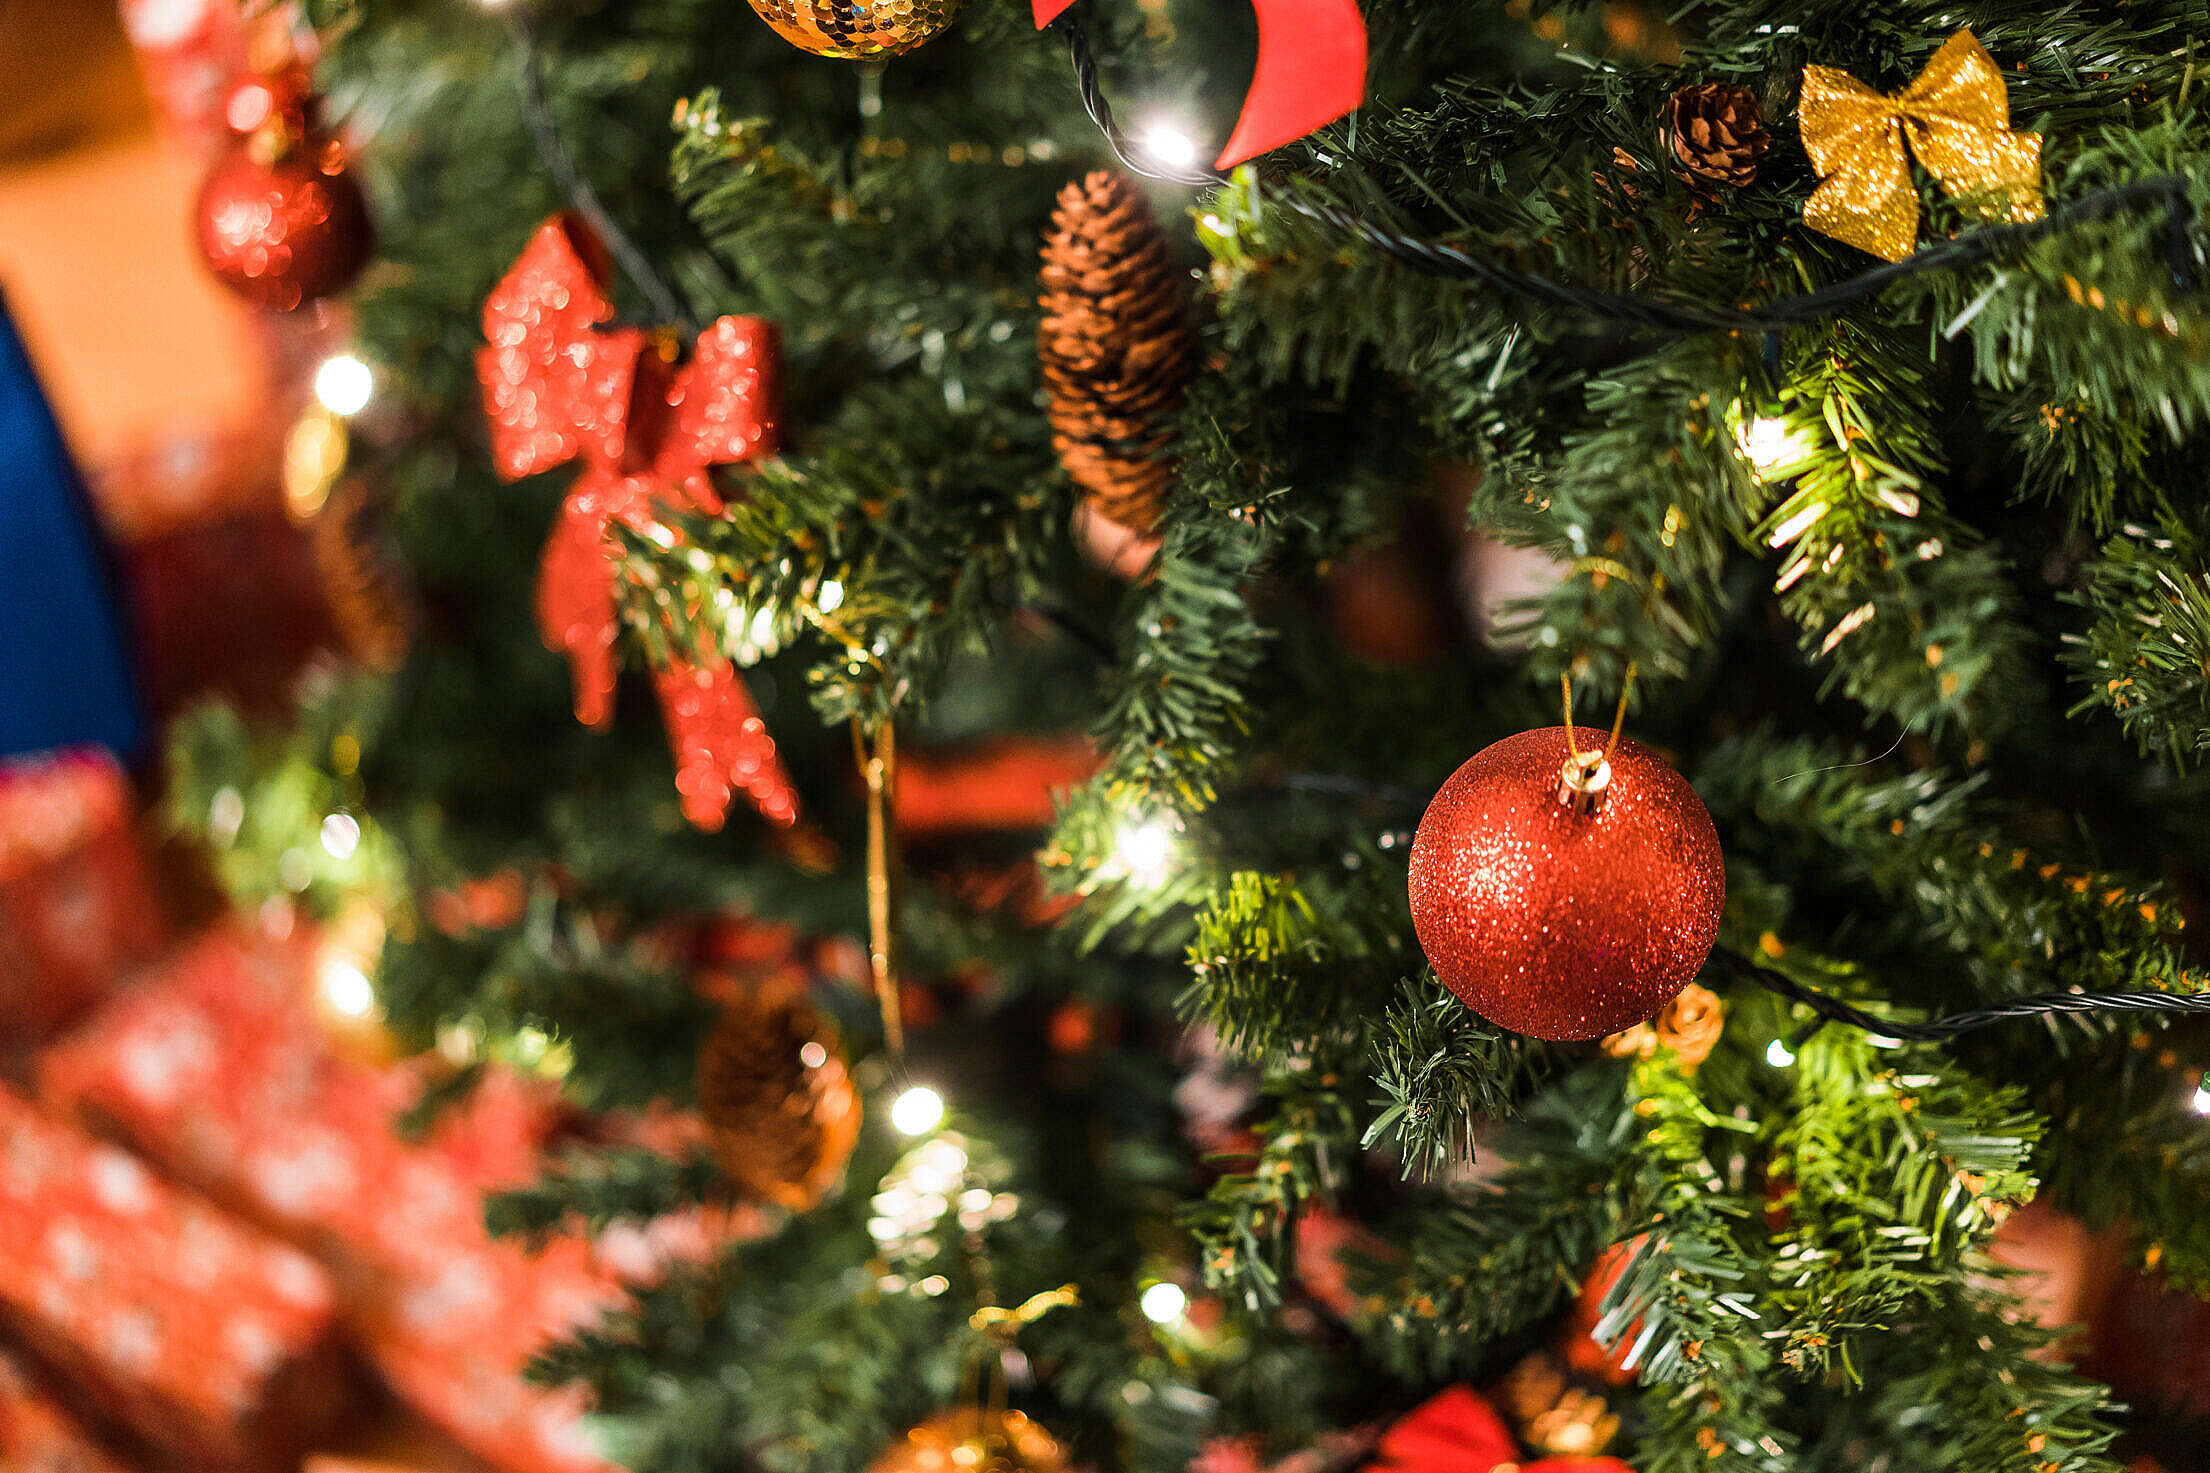 Christmas Tree with Decorations Free Stock Photo